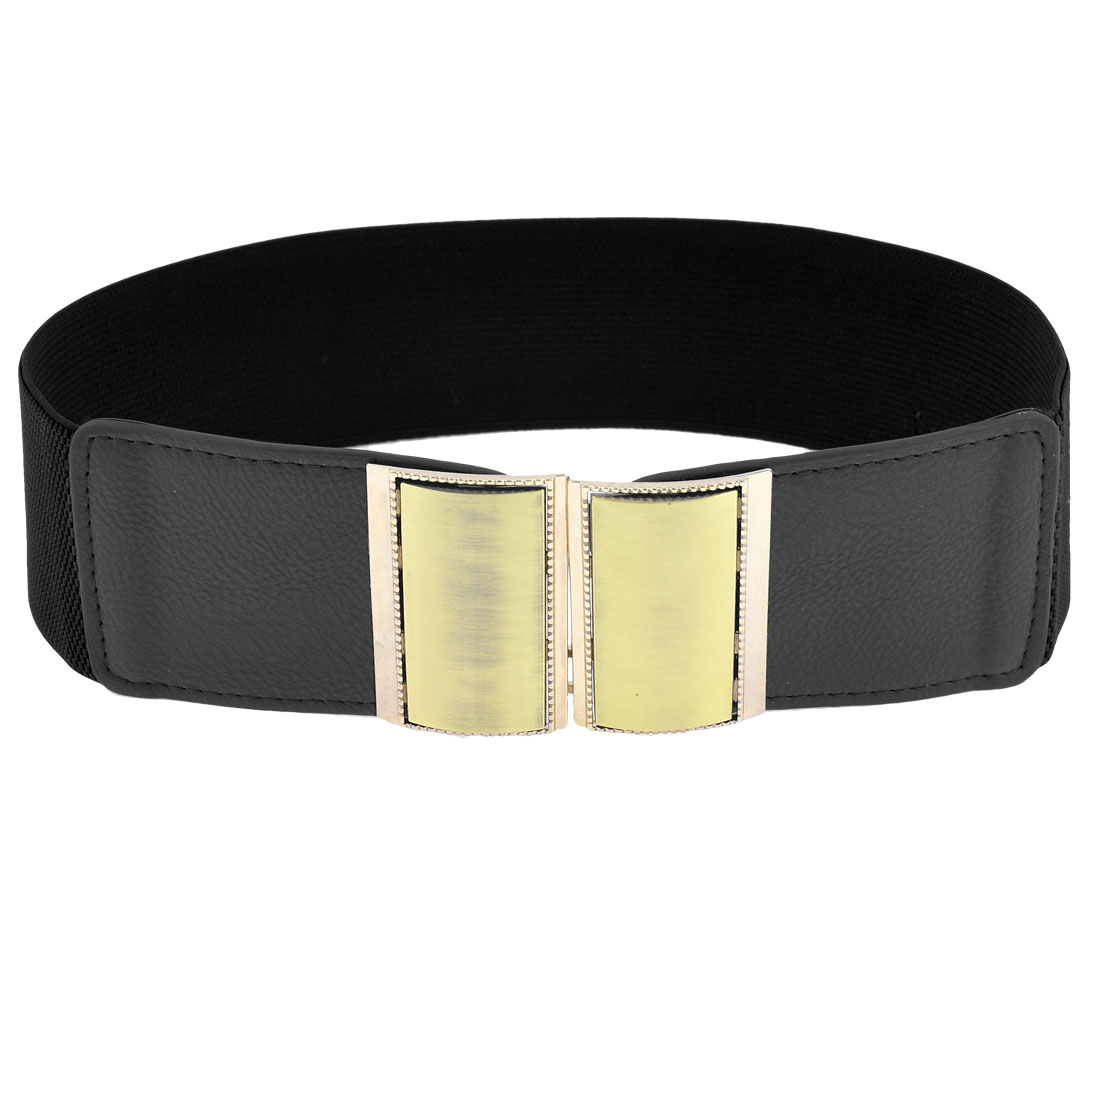 Woman Gold Tone Rectangle Interlocking Buckle Decor Cinch Waist Belt Band Black